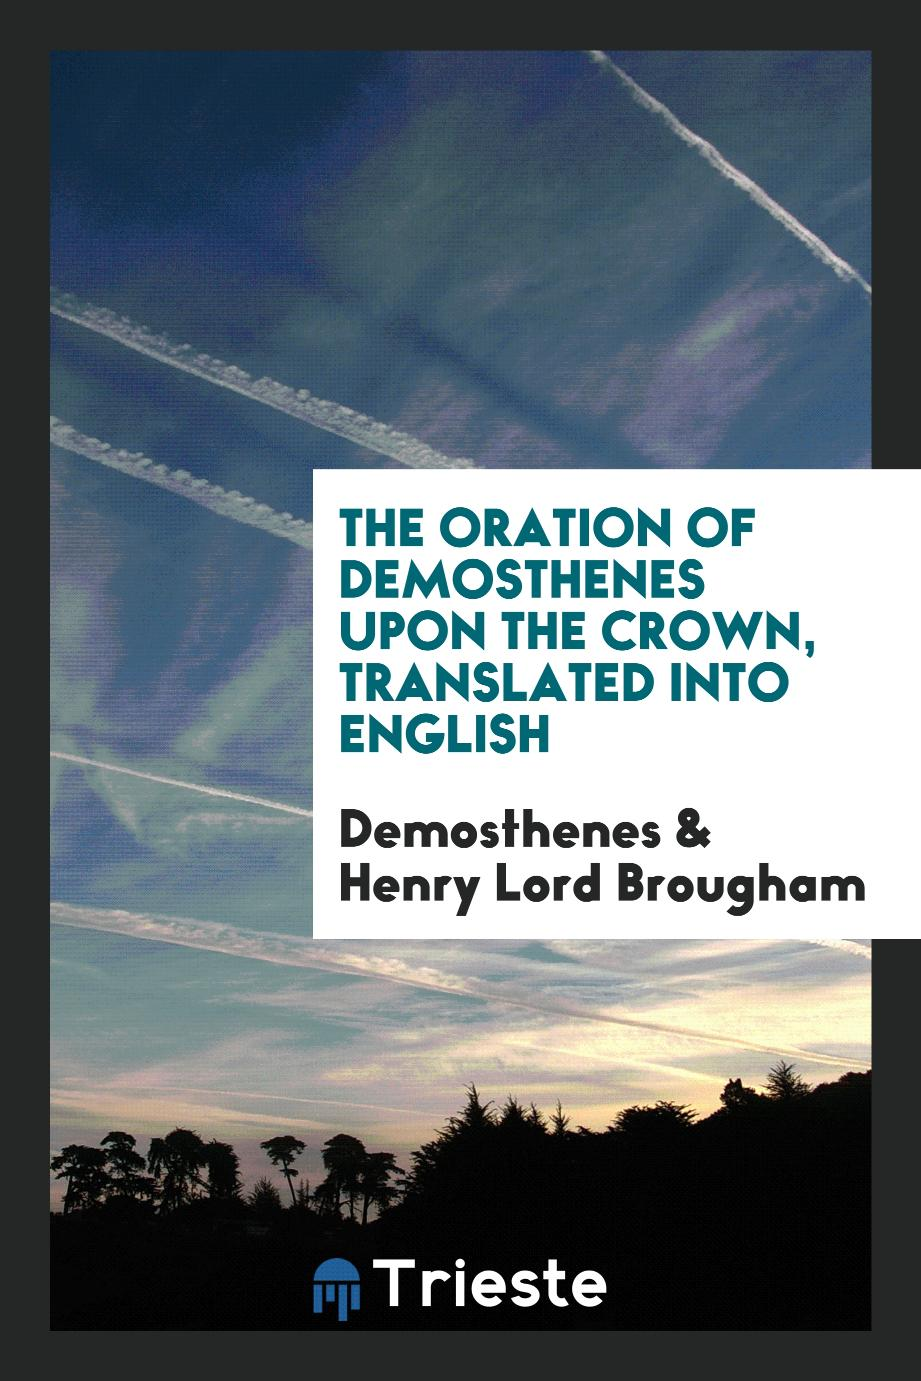 The Oration of Demosthenes upon the Crown, Translated into English